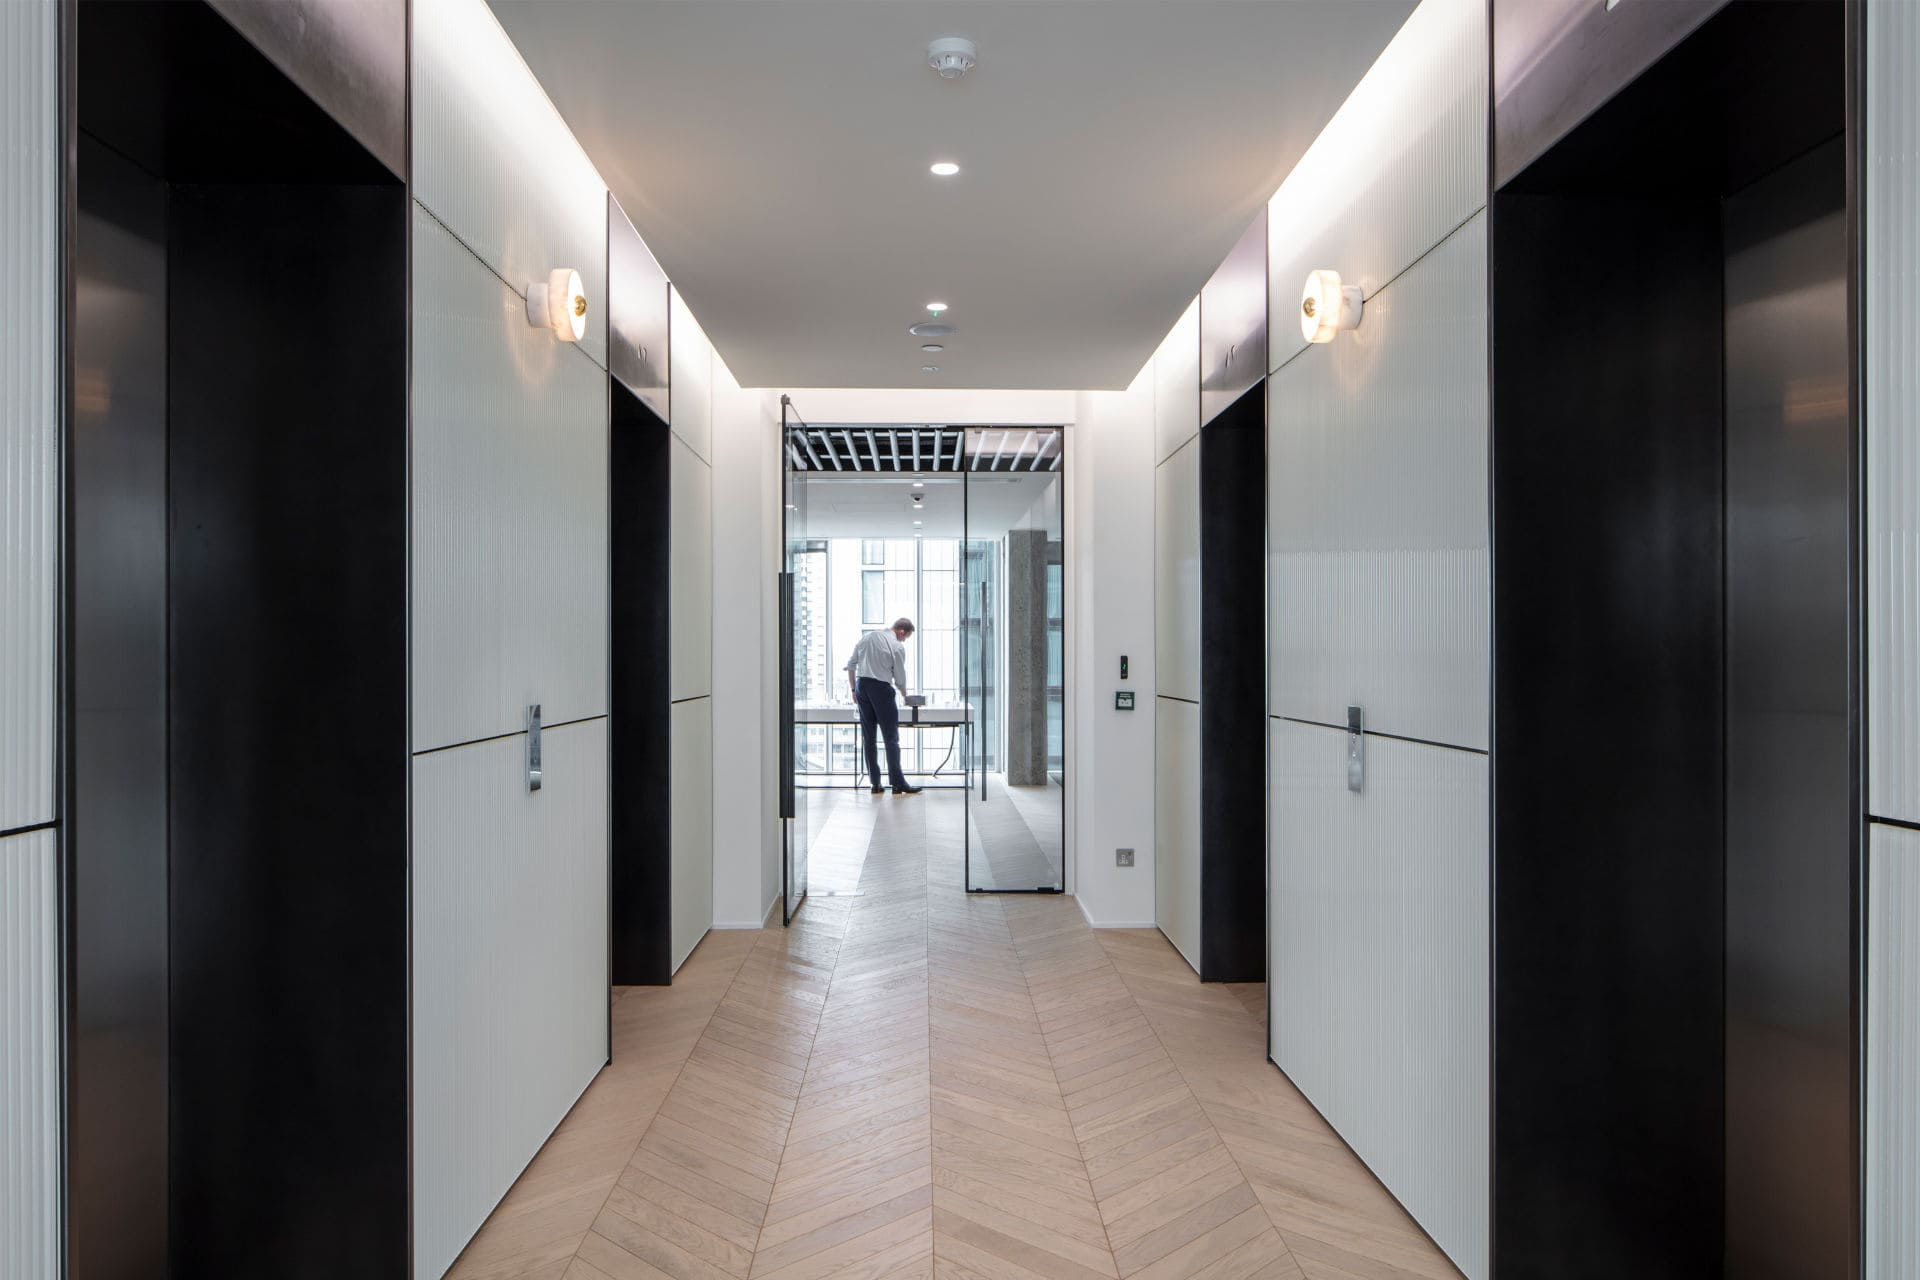 internal office corridor